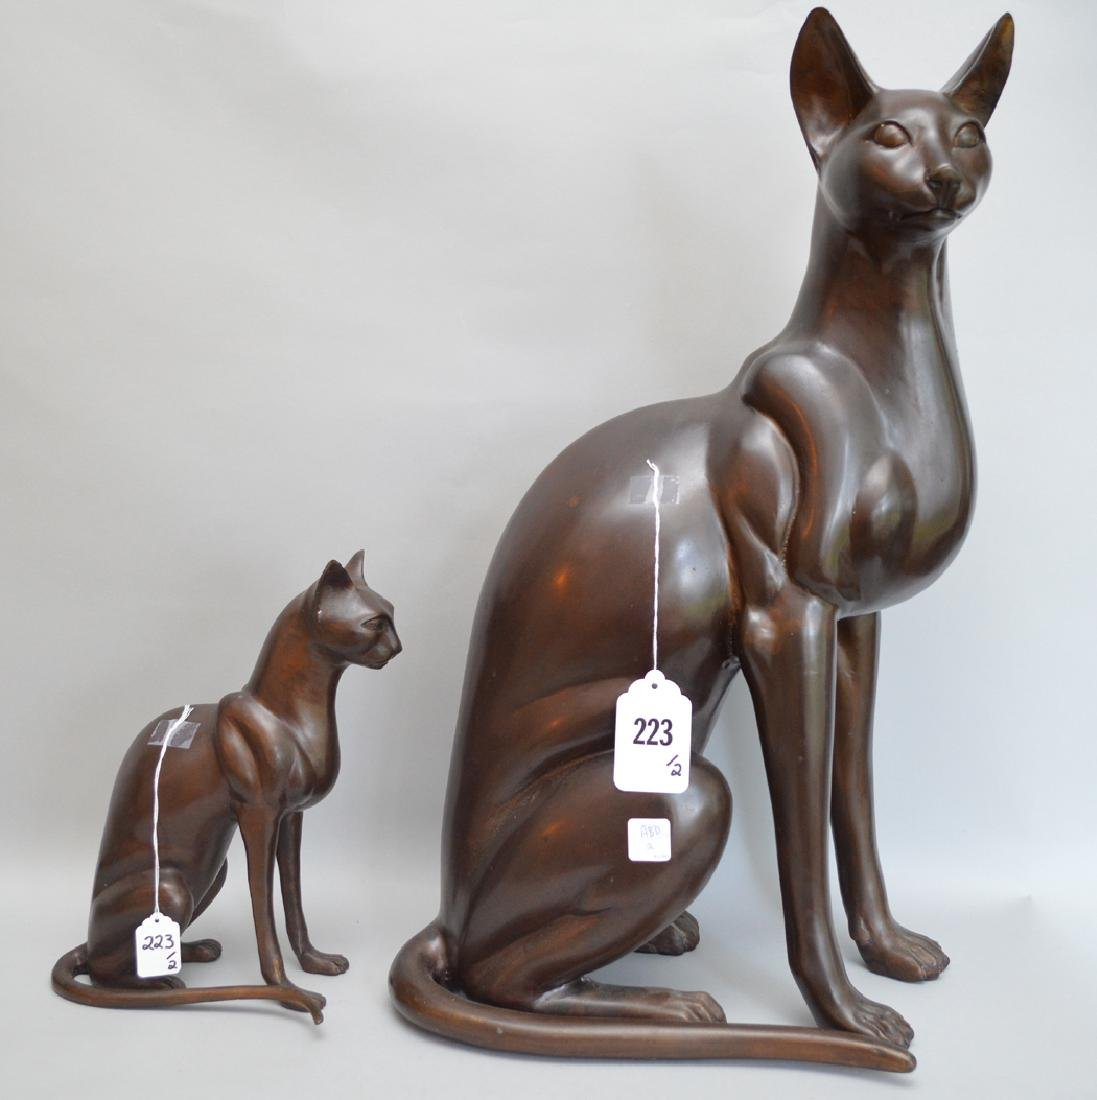 2 Egyptian Revival Style Bronze Cat Sculptures.  Each